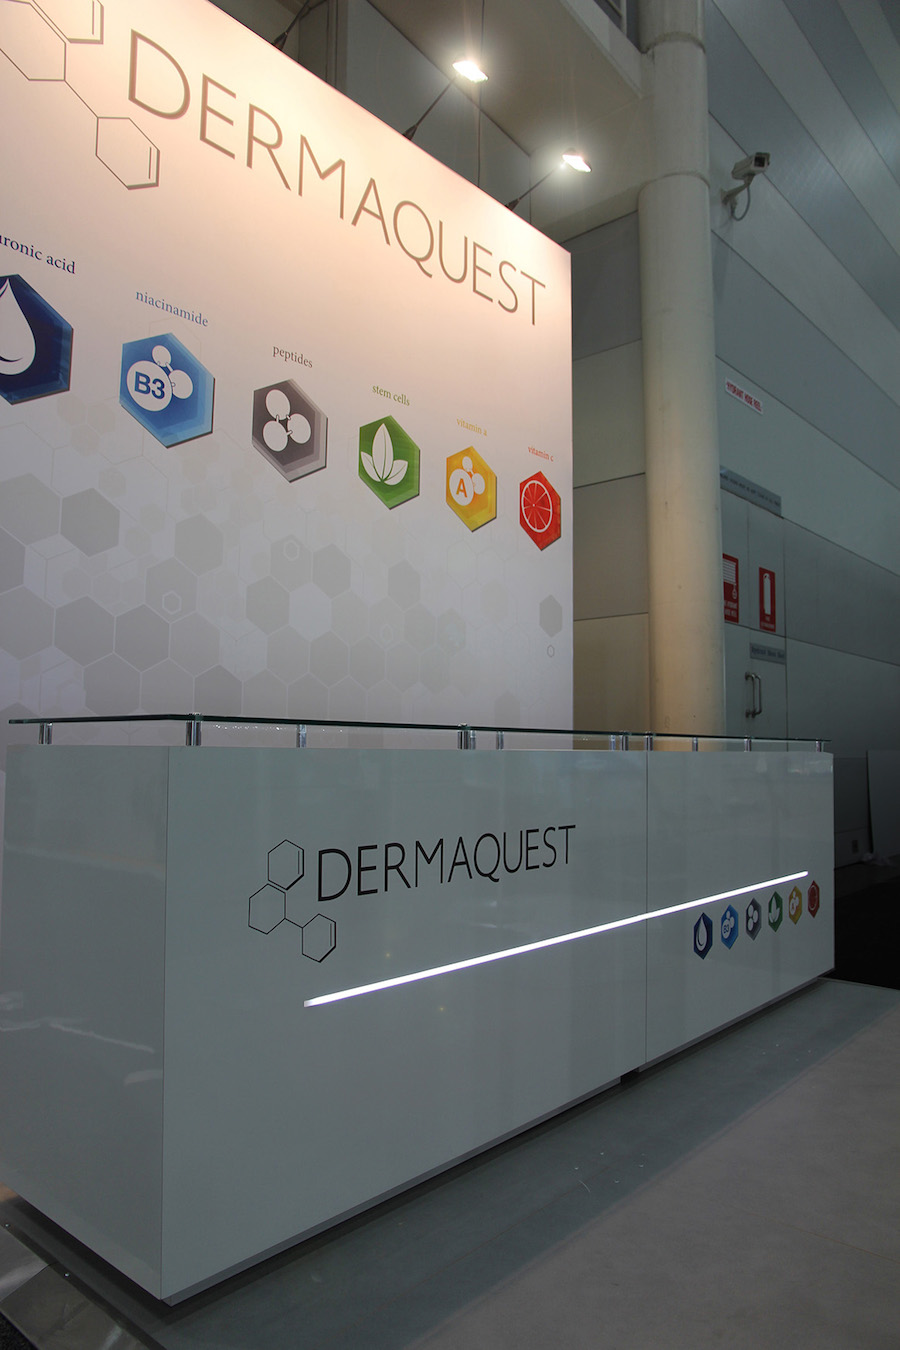 360-display-retail-expo-systems-stands-hire-designers-sydney-melbourne-newcastle-gold-coast-brisbane-dermaquest-4.jpg